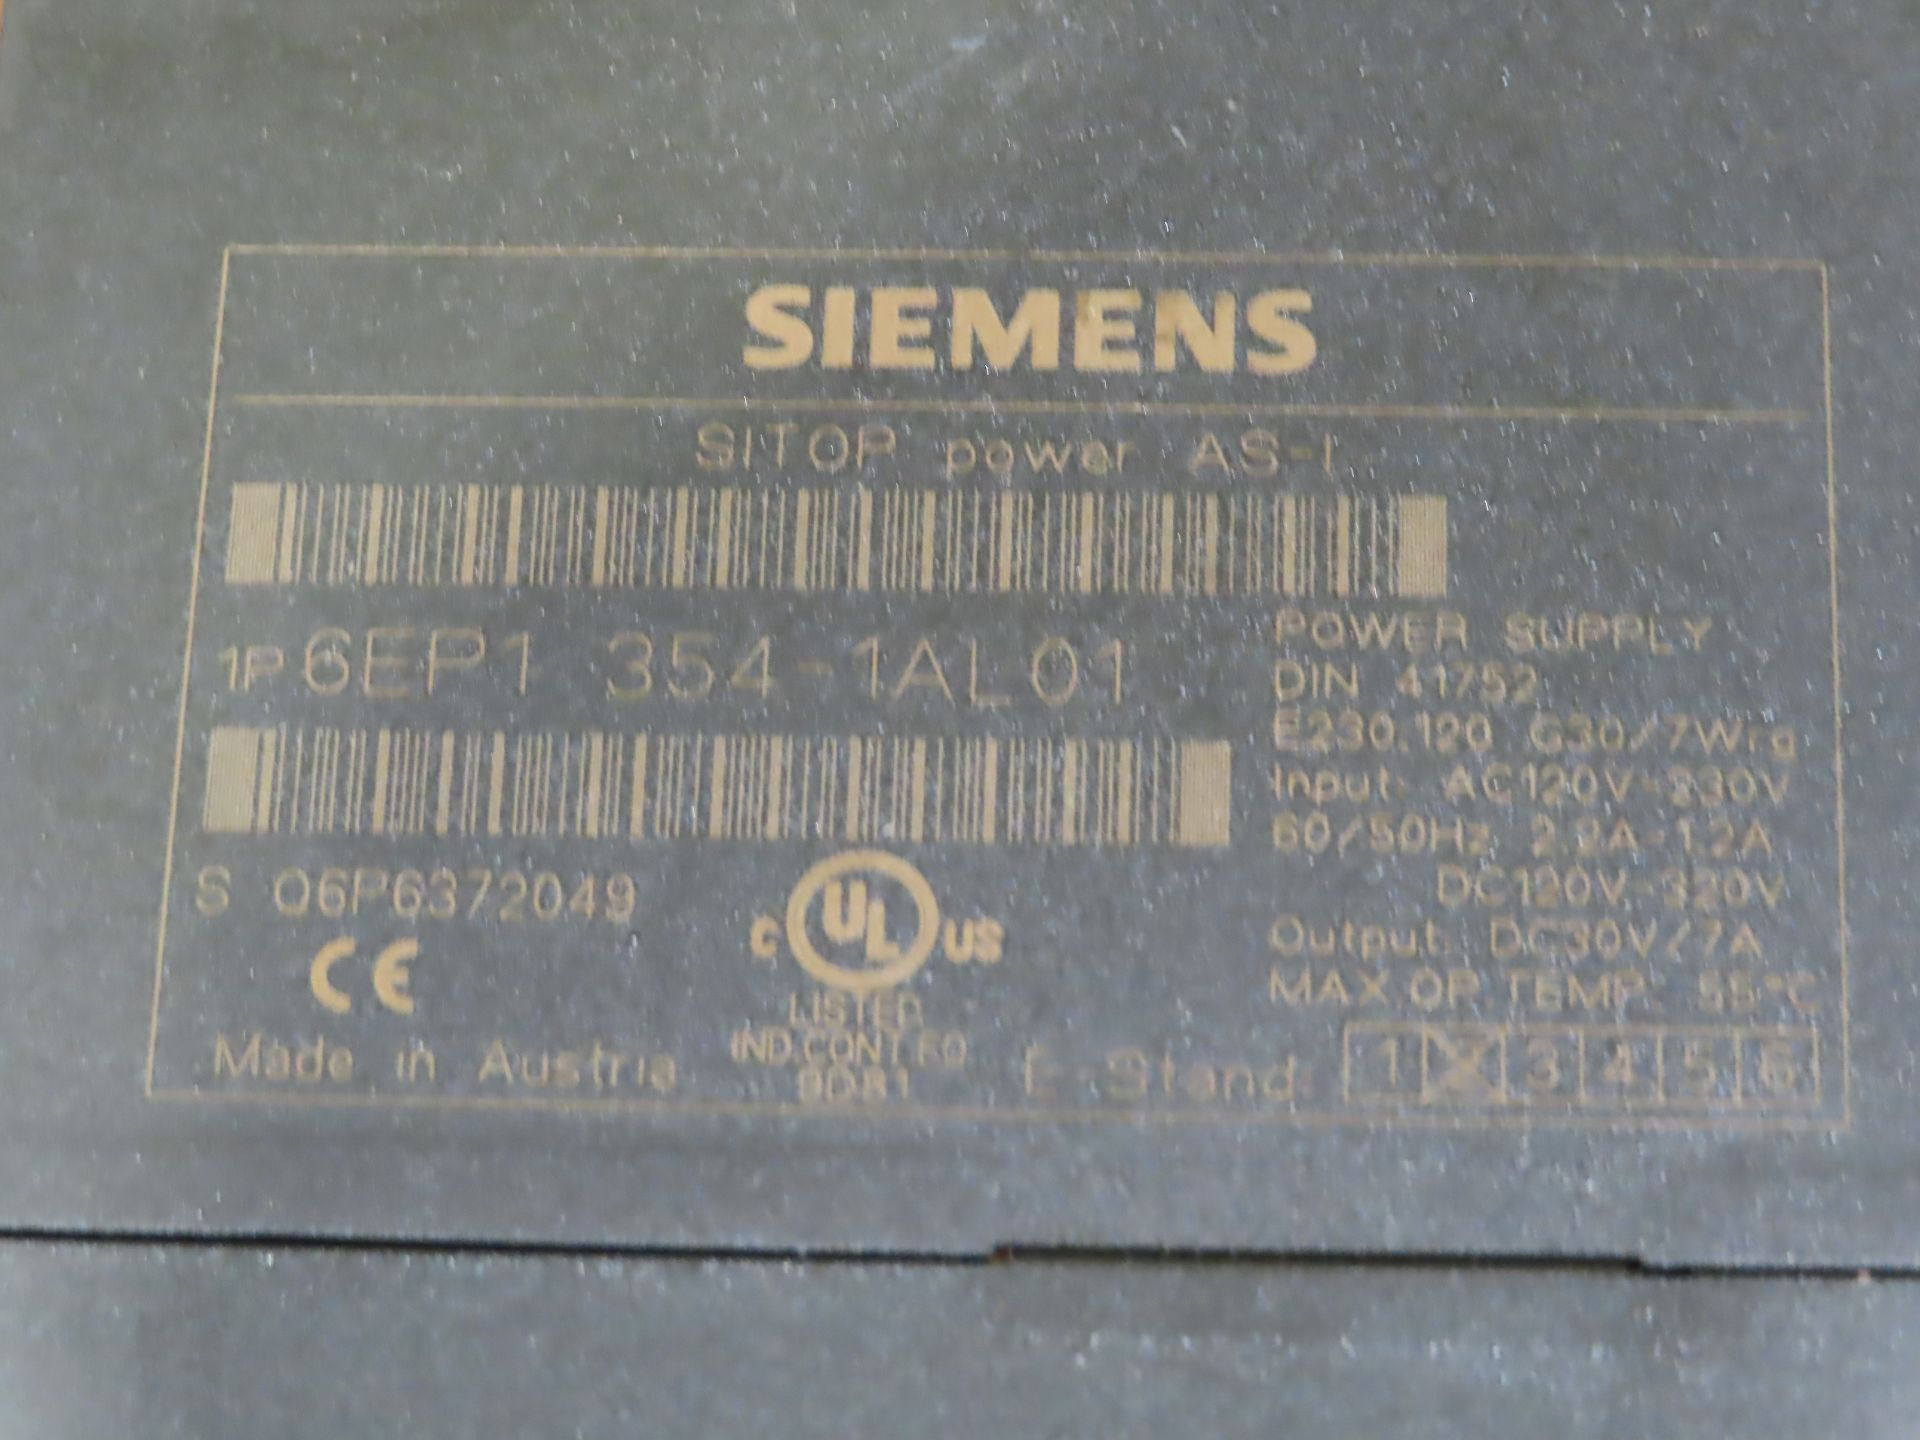 Lot 30 - Siemens model 6EP1-354-1AL01, as always, with Brolyn LLC auctions, all lots can be picked up from